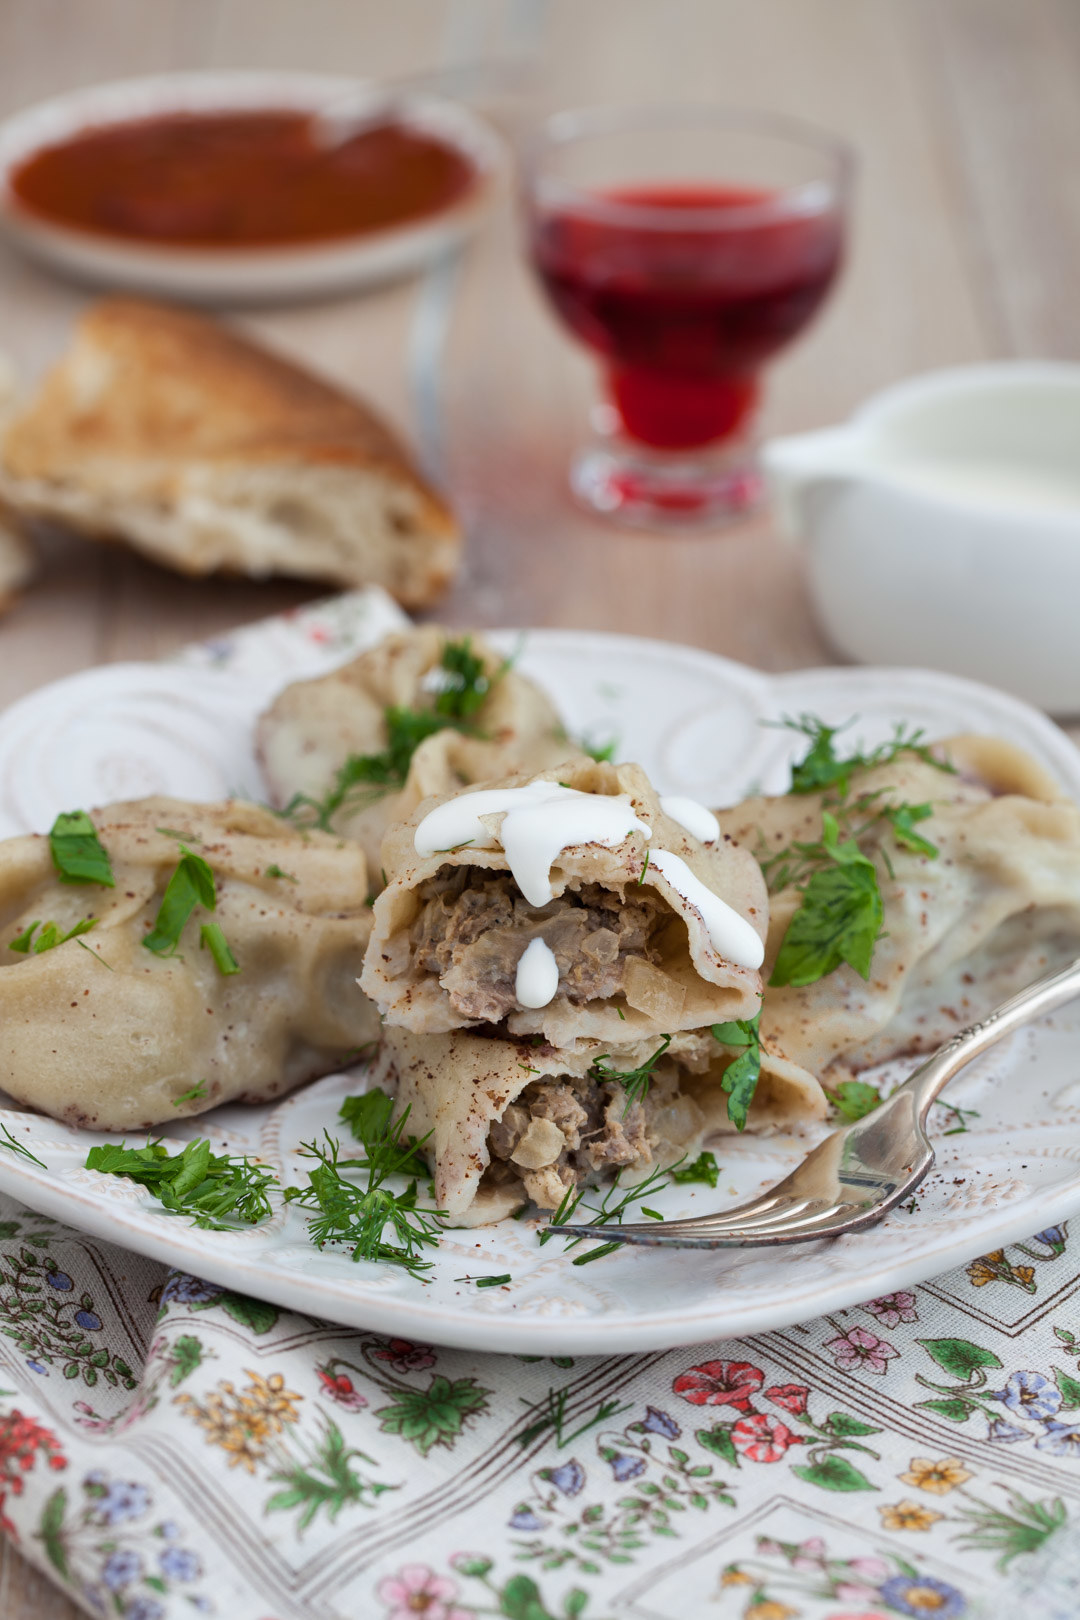 A plate of manti garnished with fresh herbs